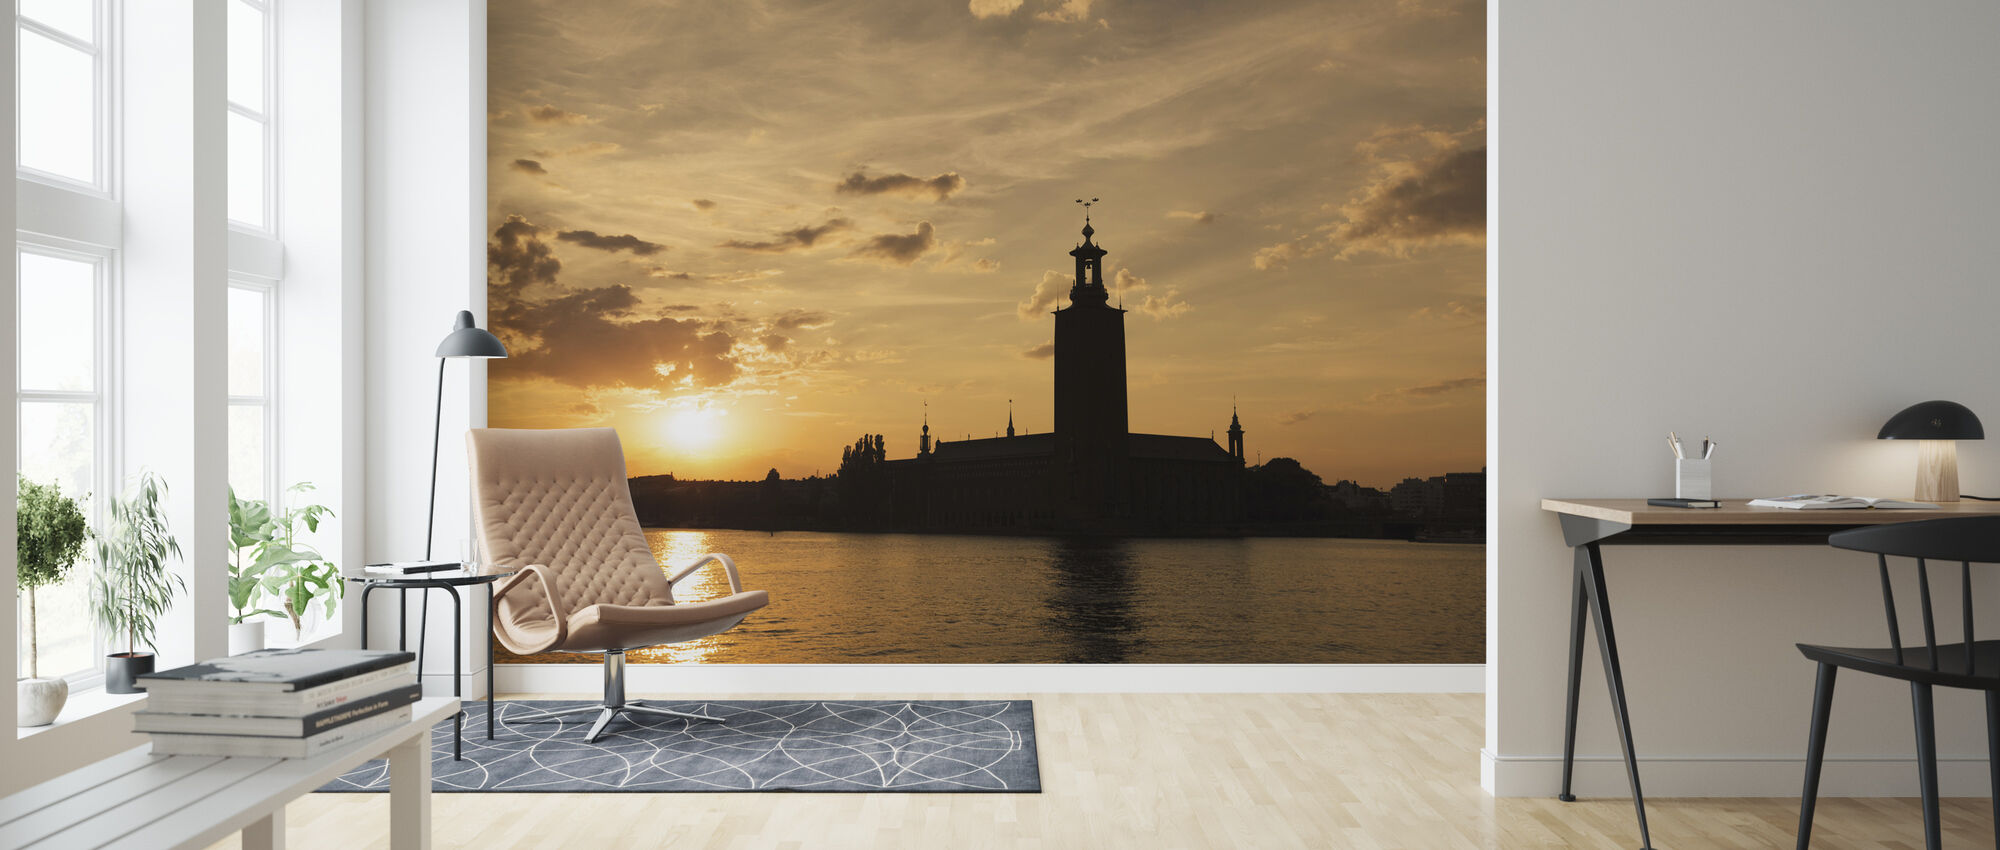 Stockholm City Hall in Silhouette - Wallpaper - Living Room